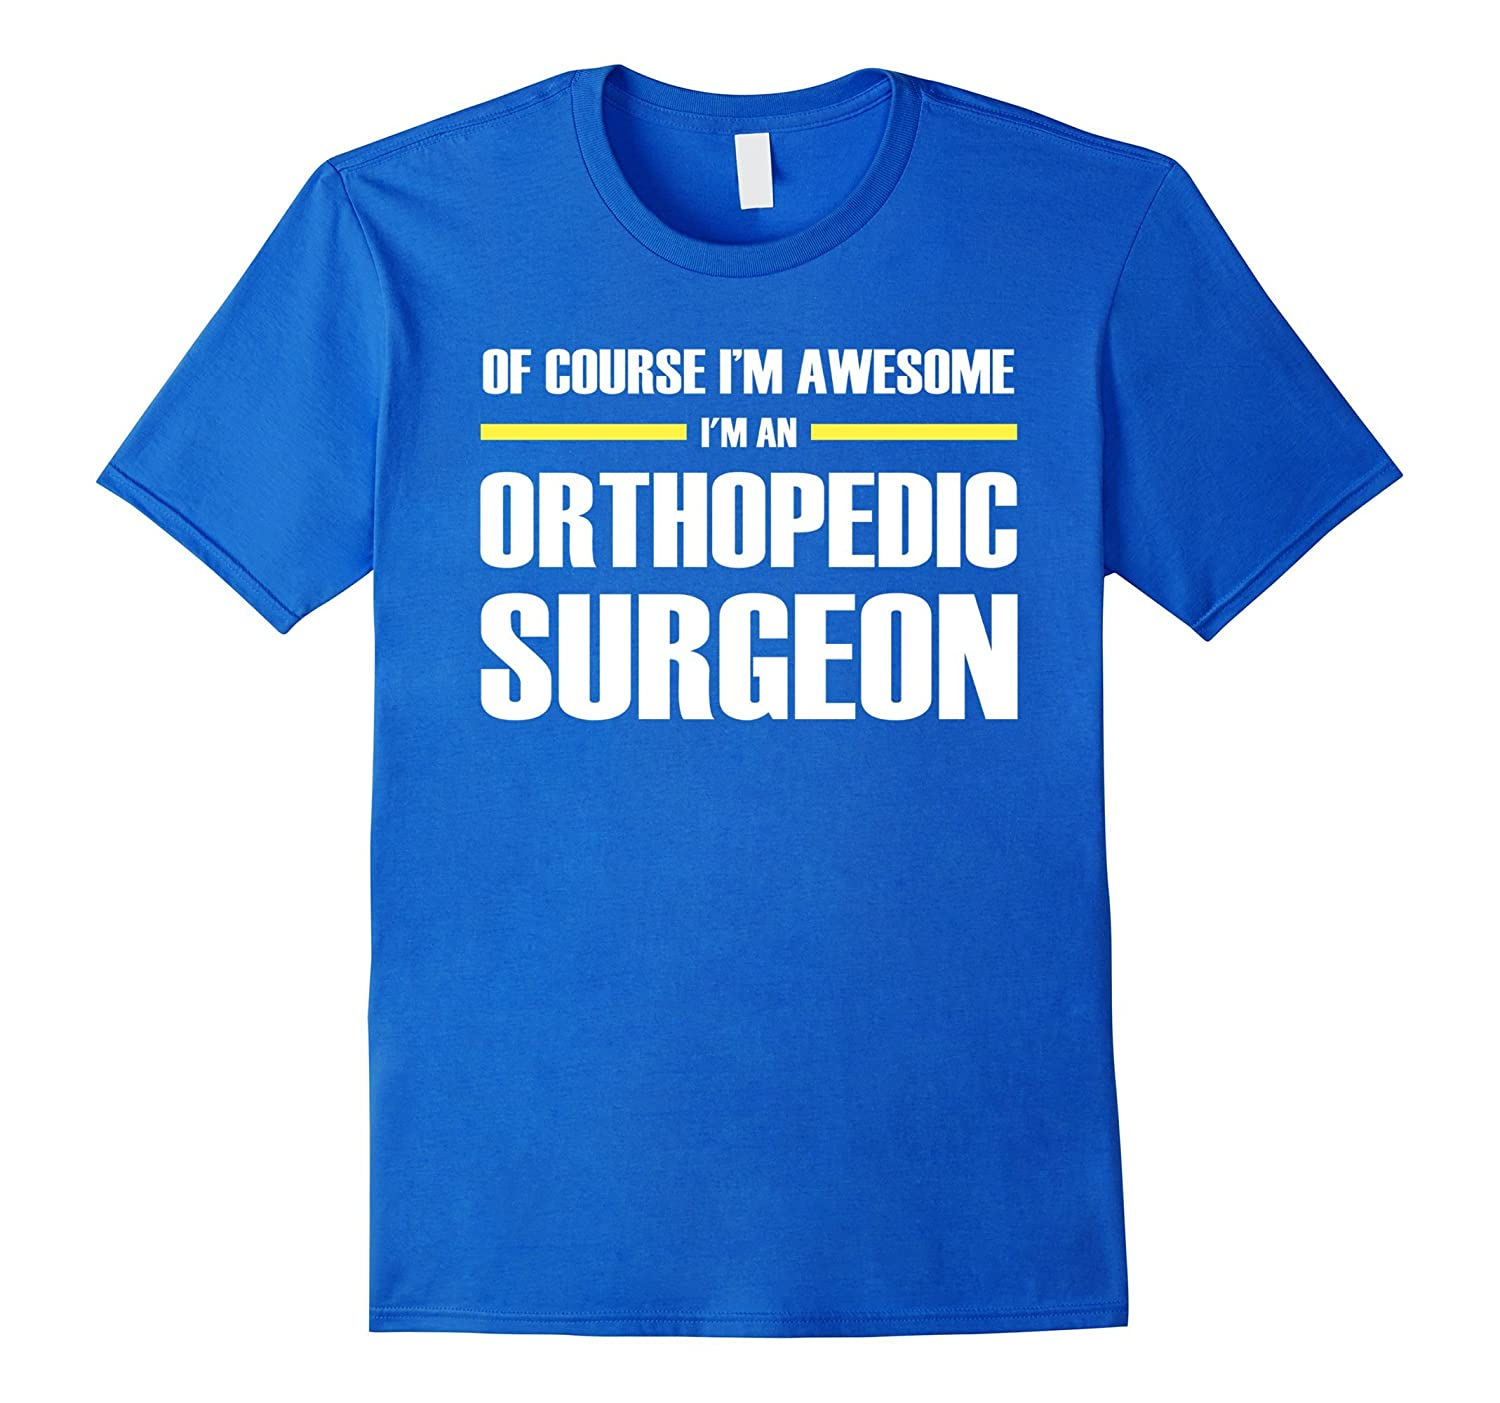 Orthopedic Surgeon Gifts Im Awesome T-Shirt-TD